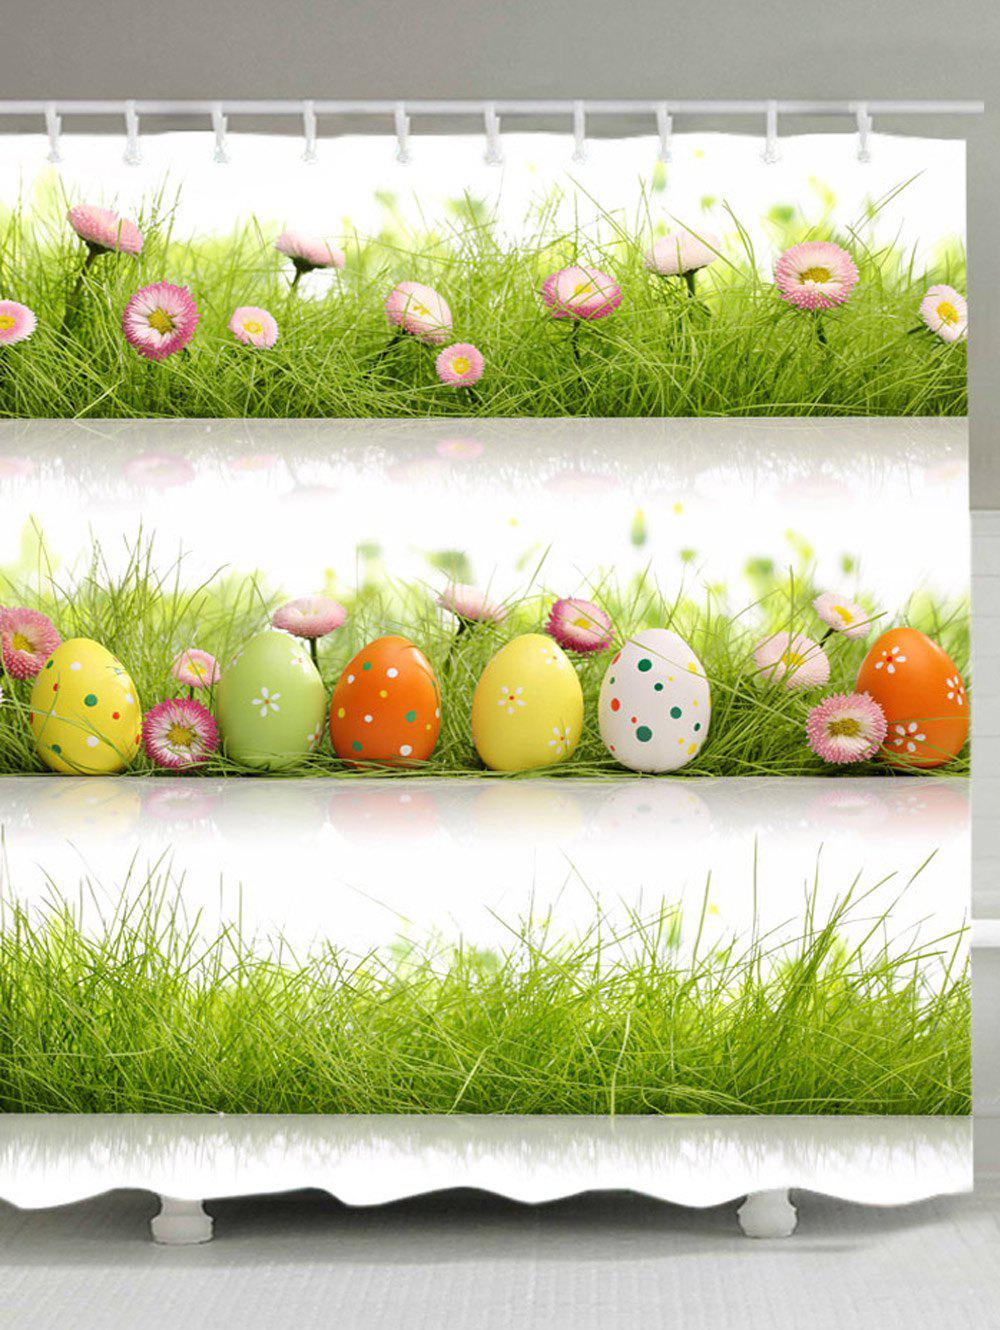 Buy Eggs Grass Pattern Waterproof Bathroom Shower Curtain